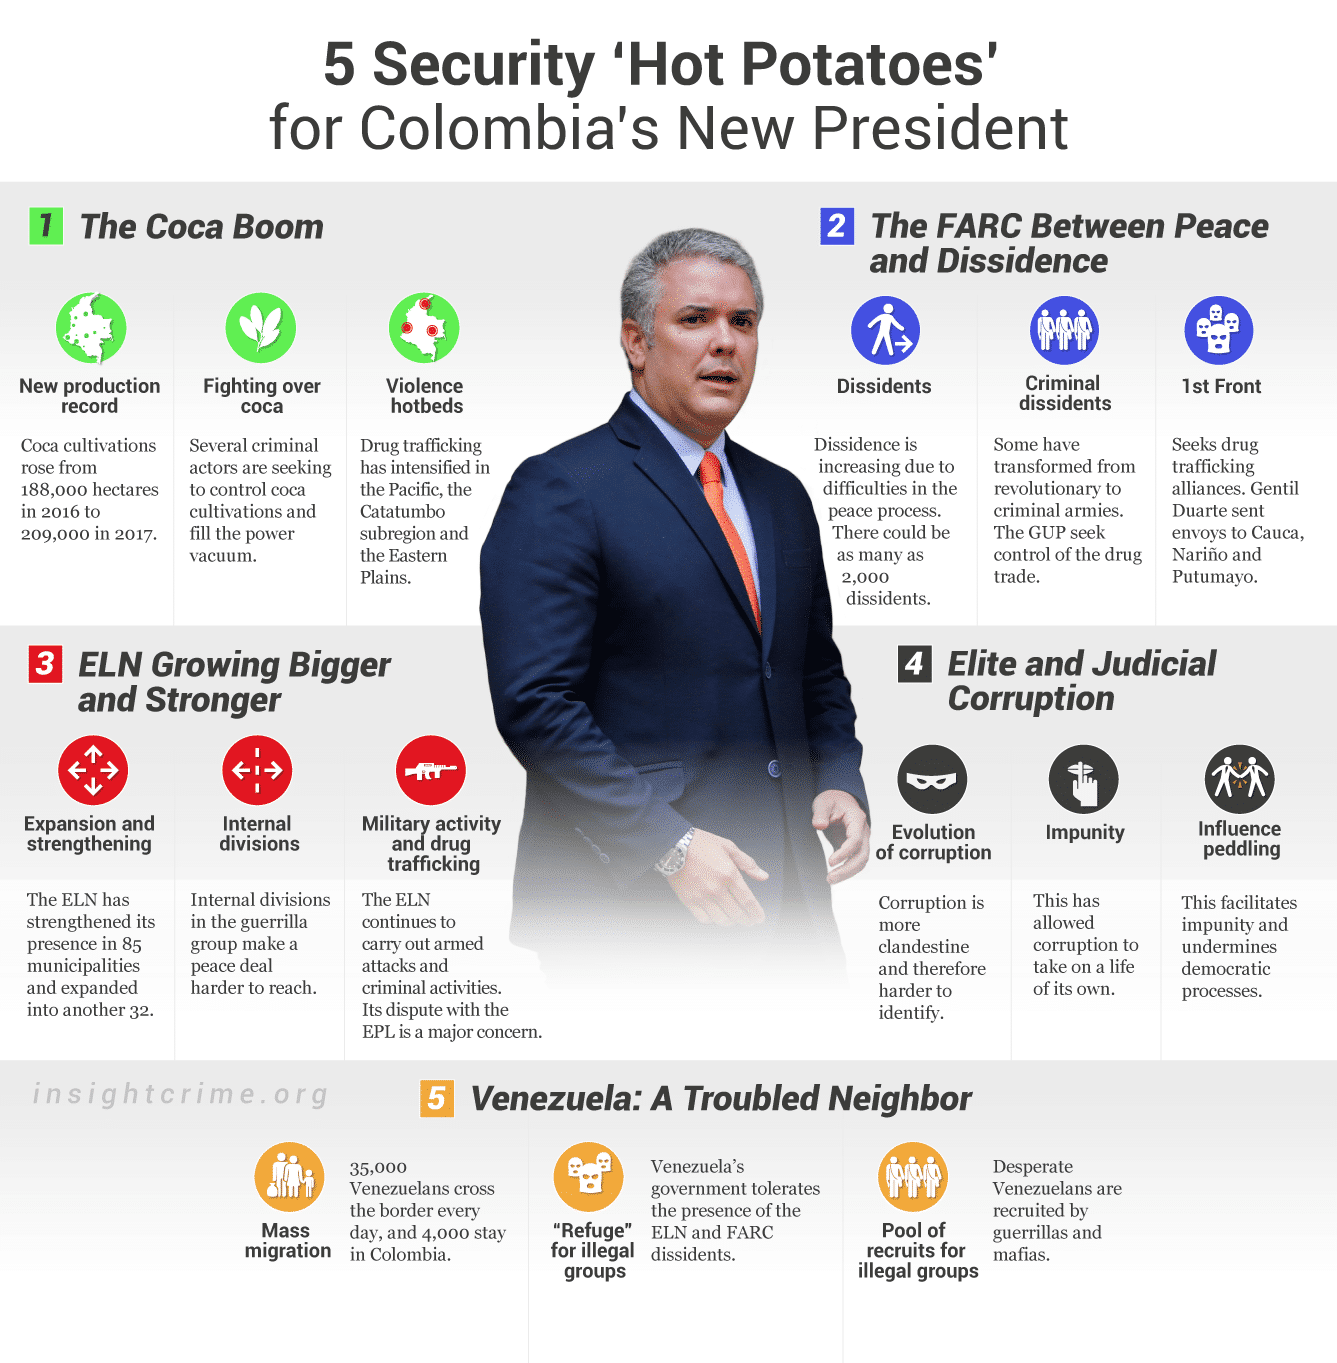 Security Hot Potatoes for Colombia President Iván Duque